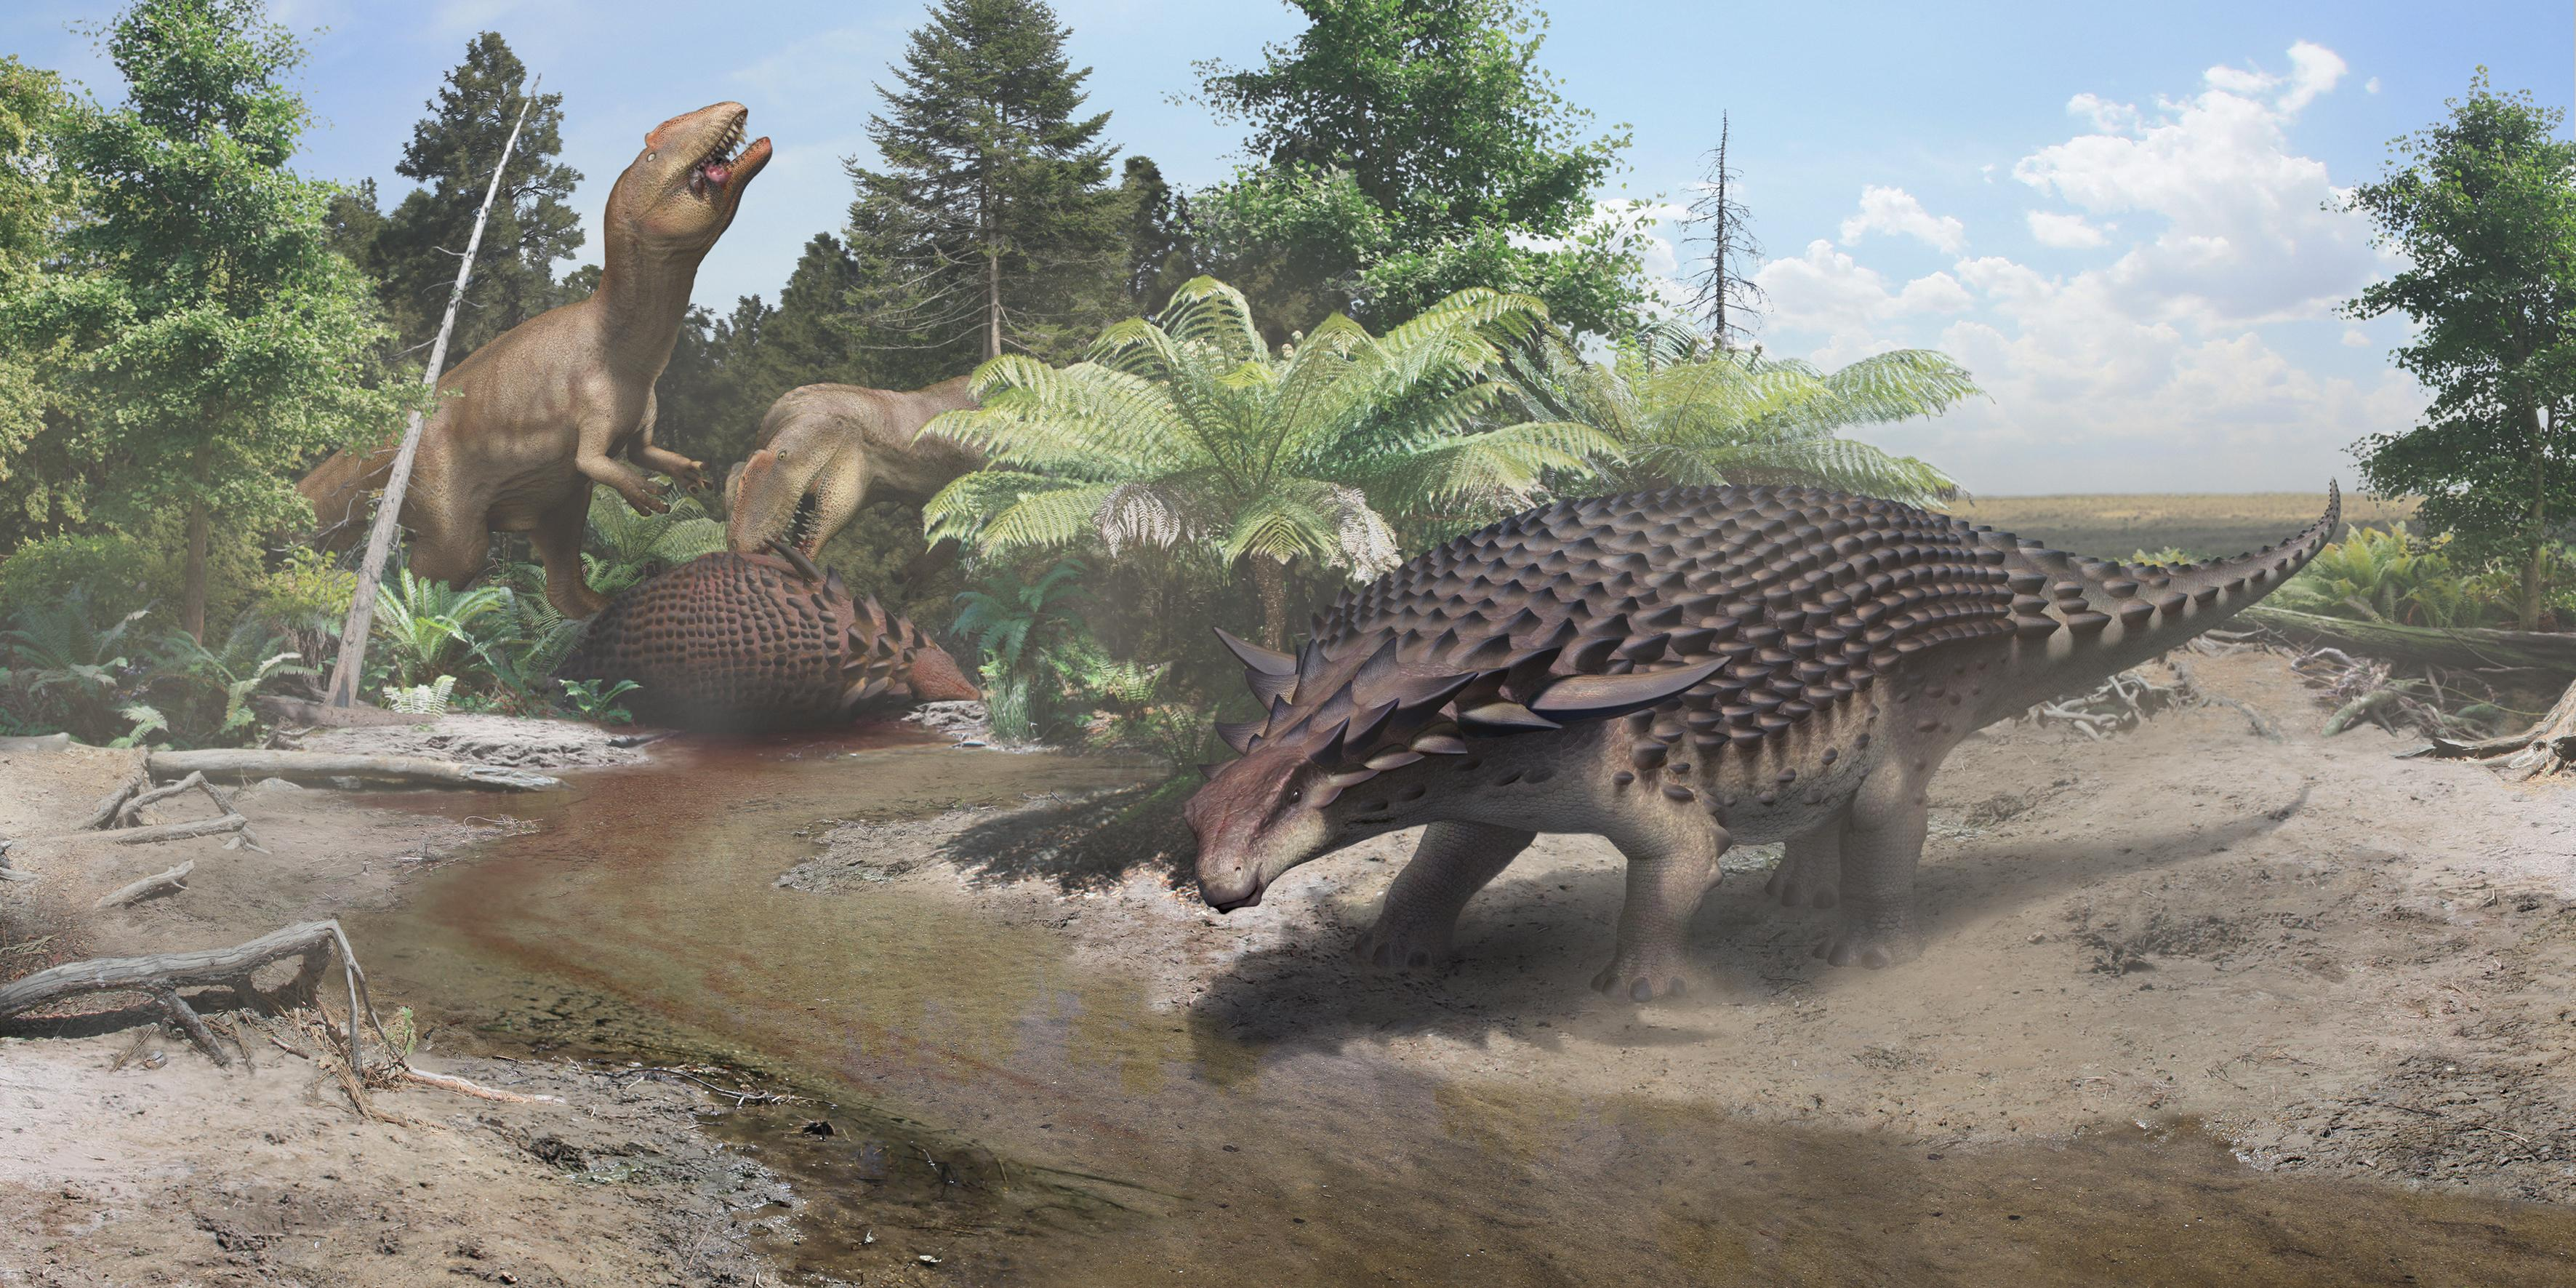 Tank-sized dinosaur discovered which highlights the TERRIFYING nature of Cretaceous period